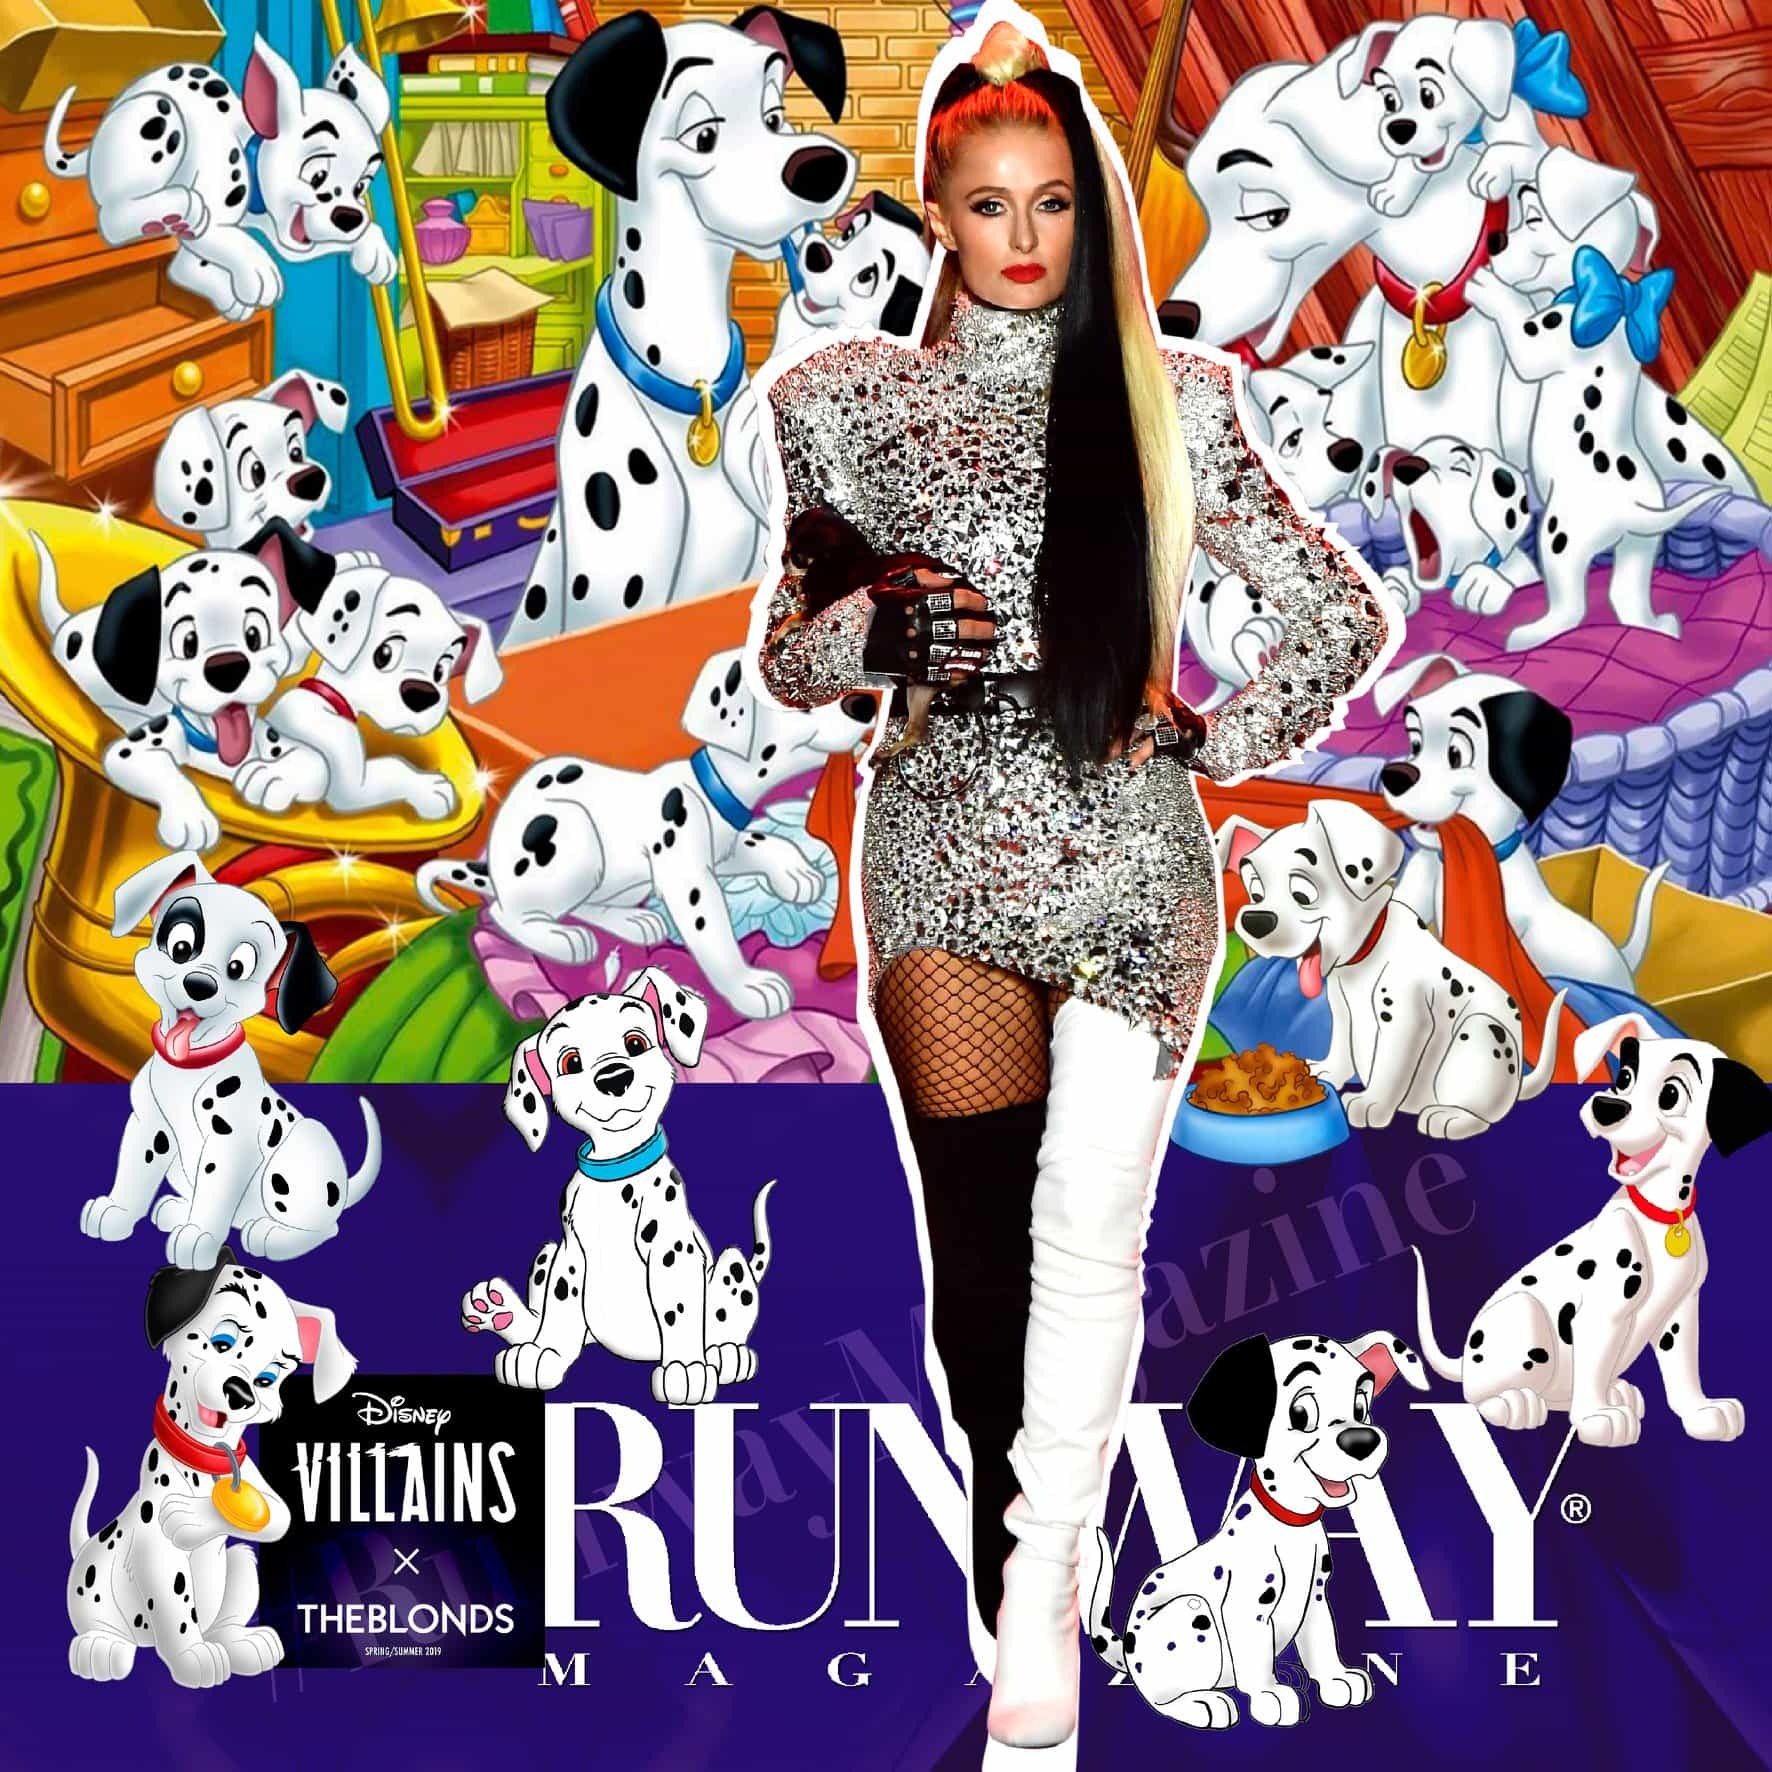 Paris Hilton Spring-Summer 2019 Disney Villains x The Blonds New York by RUNWAY MAGAZINE